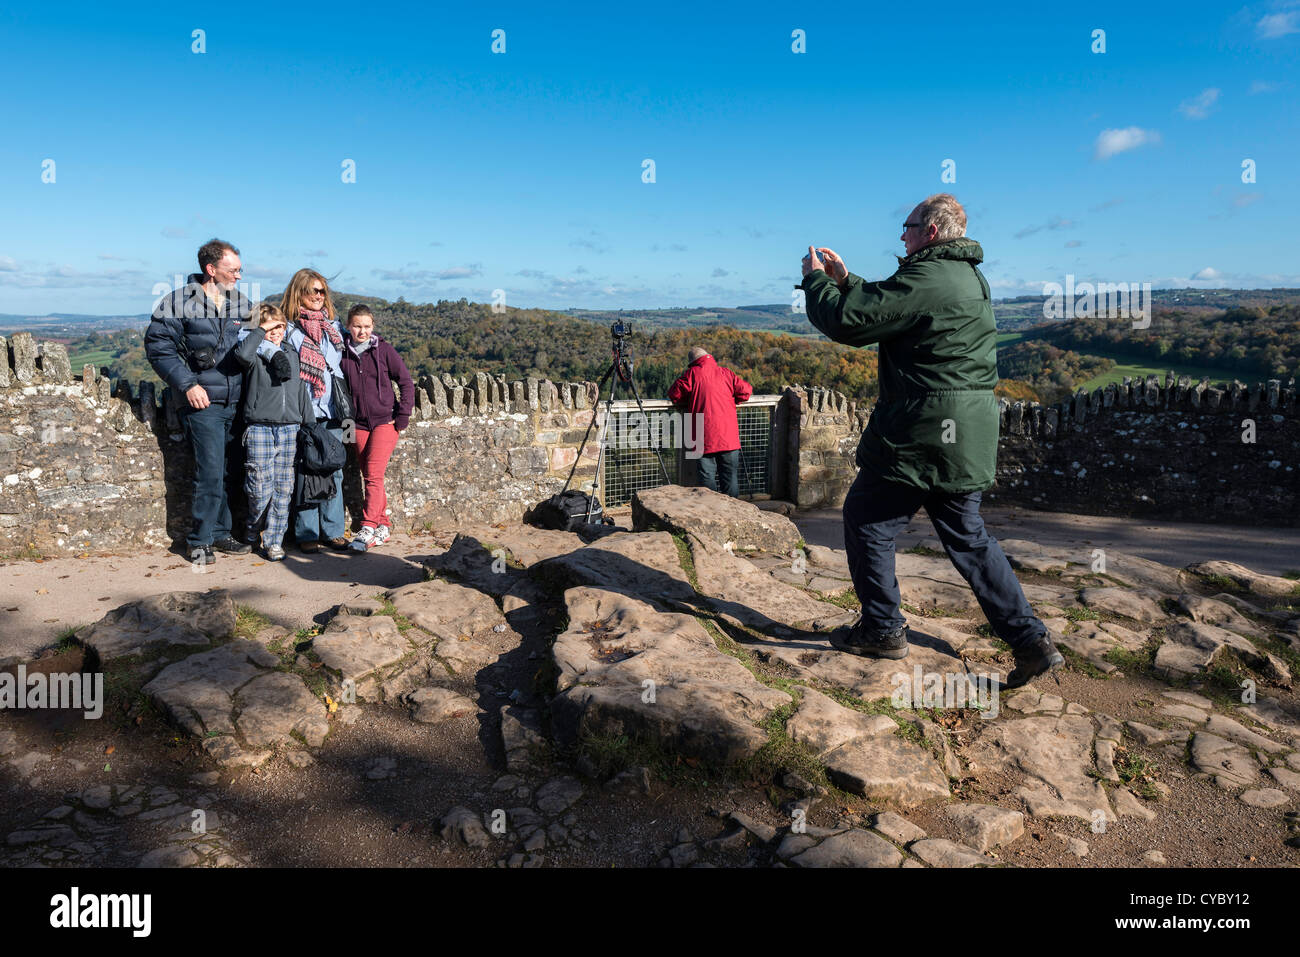 TAKING FAMILY PHOTOGRAPH AT SYMONDS YAT ROCK, BEAUTY SPOT OVERLOOKING THE RIVER WYE IN HEREFORDSHIRE ENGLAND UK - Stock Image